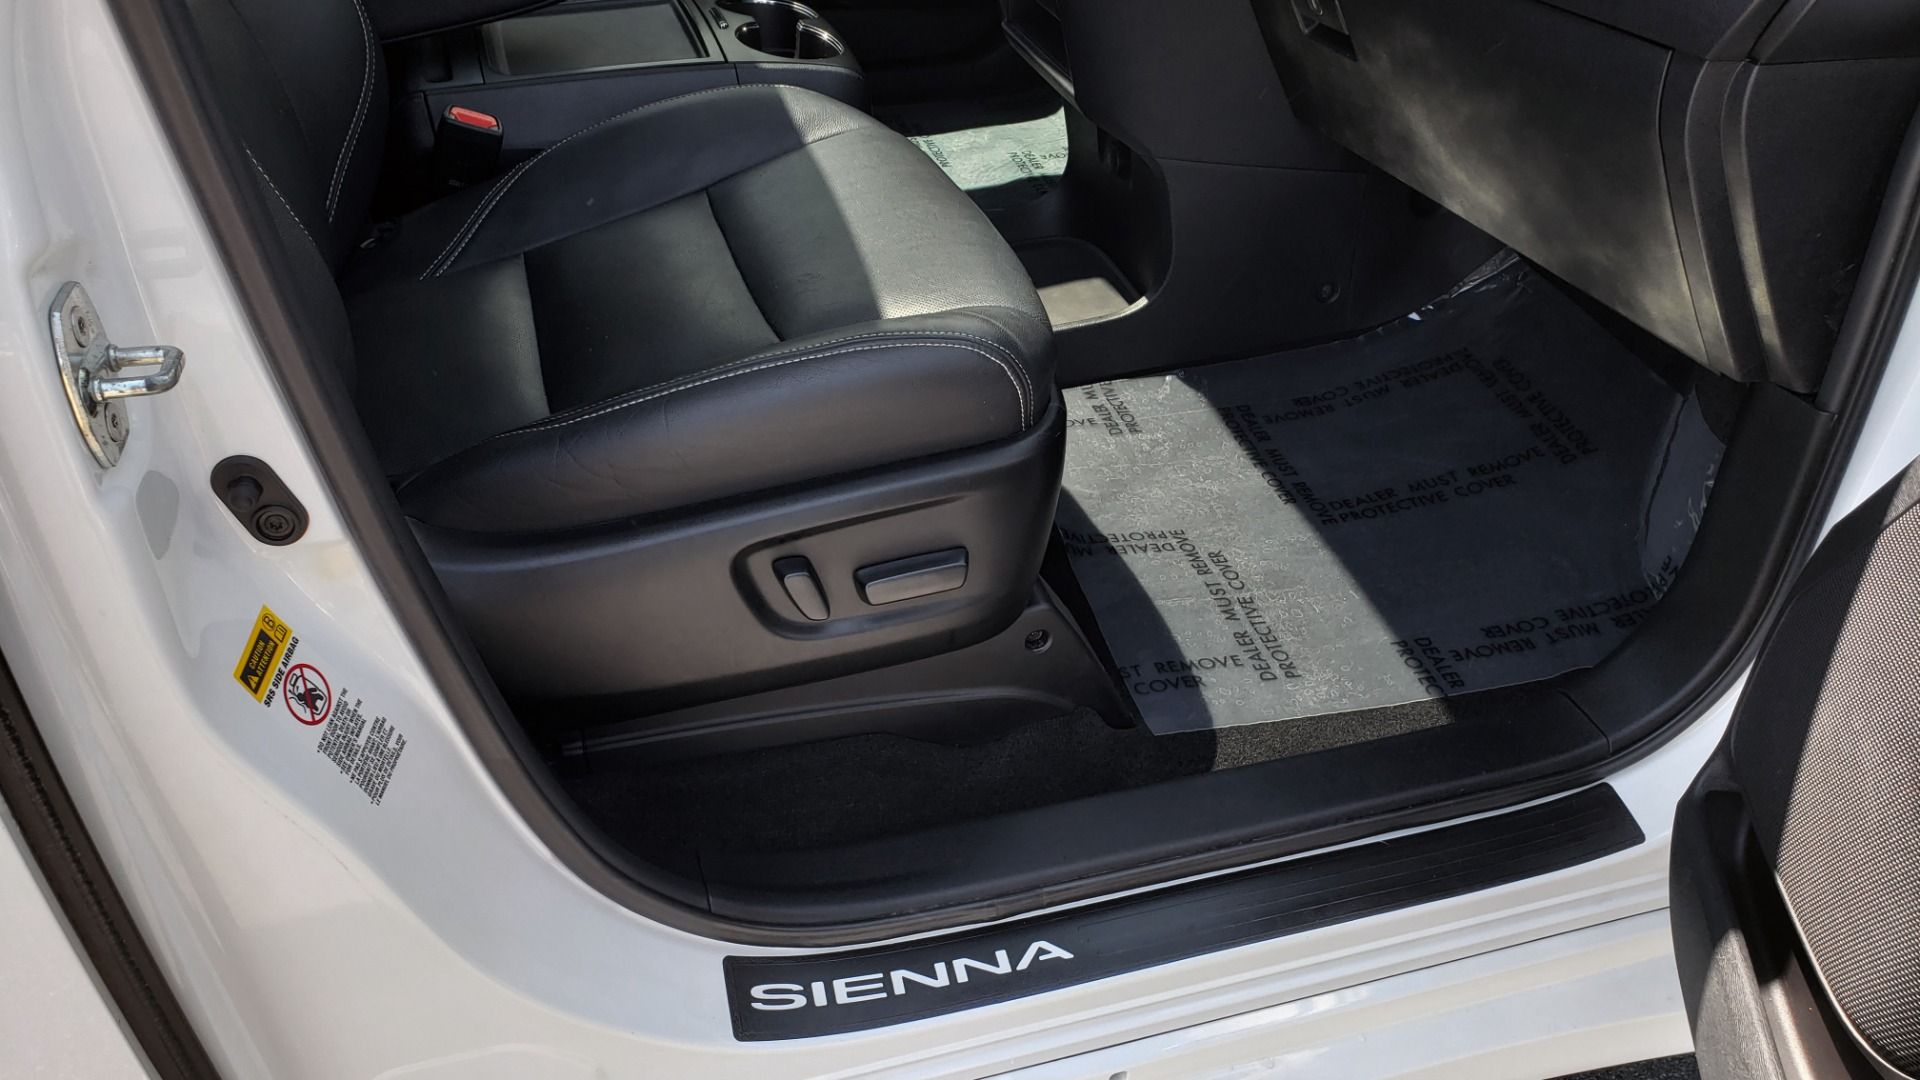 Used 2015 Toyota SIENNA SE 3.5L / FWD / 3-ROWS / 8-PASS / SUNROOF / DVD / REARVIEW for sale $21,995 at Formula Imports in Charlotte NC 28227 62